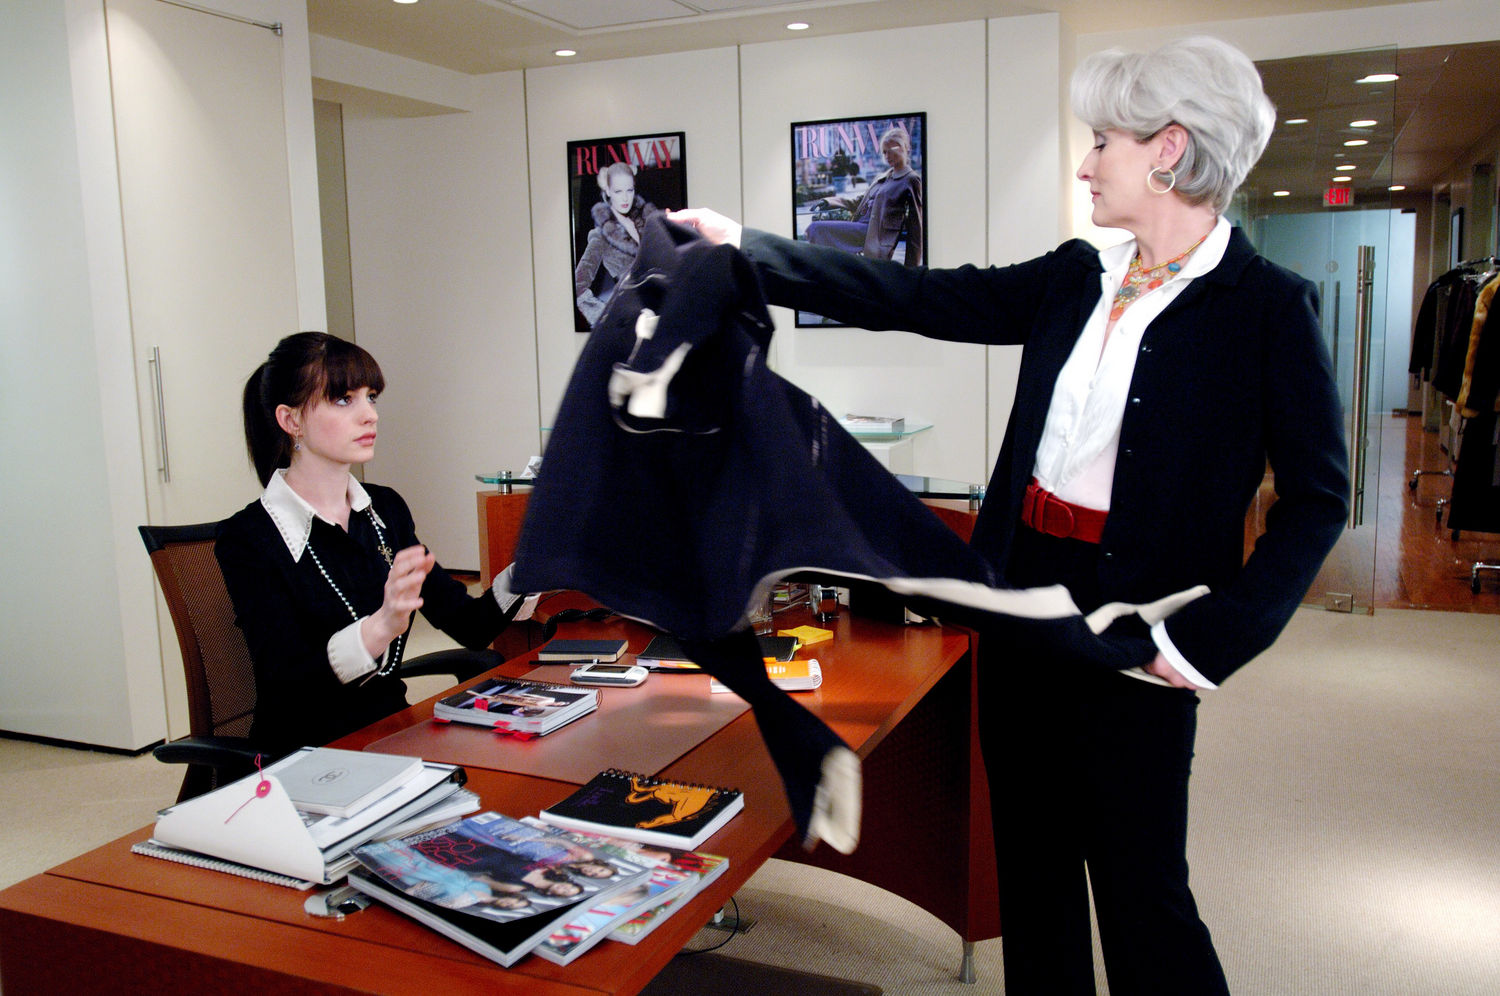 01-devil-wears-prada-miranda-priestly-throwing-coats-main